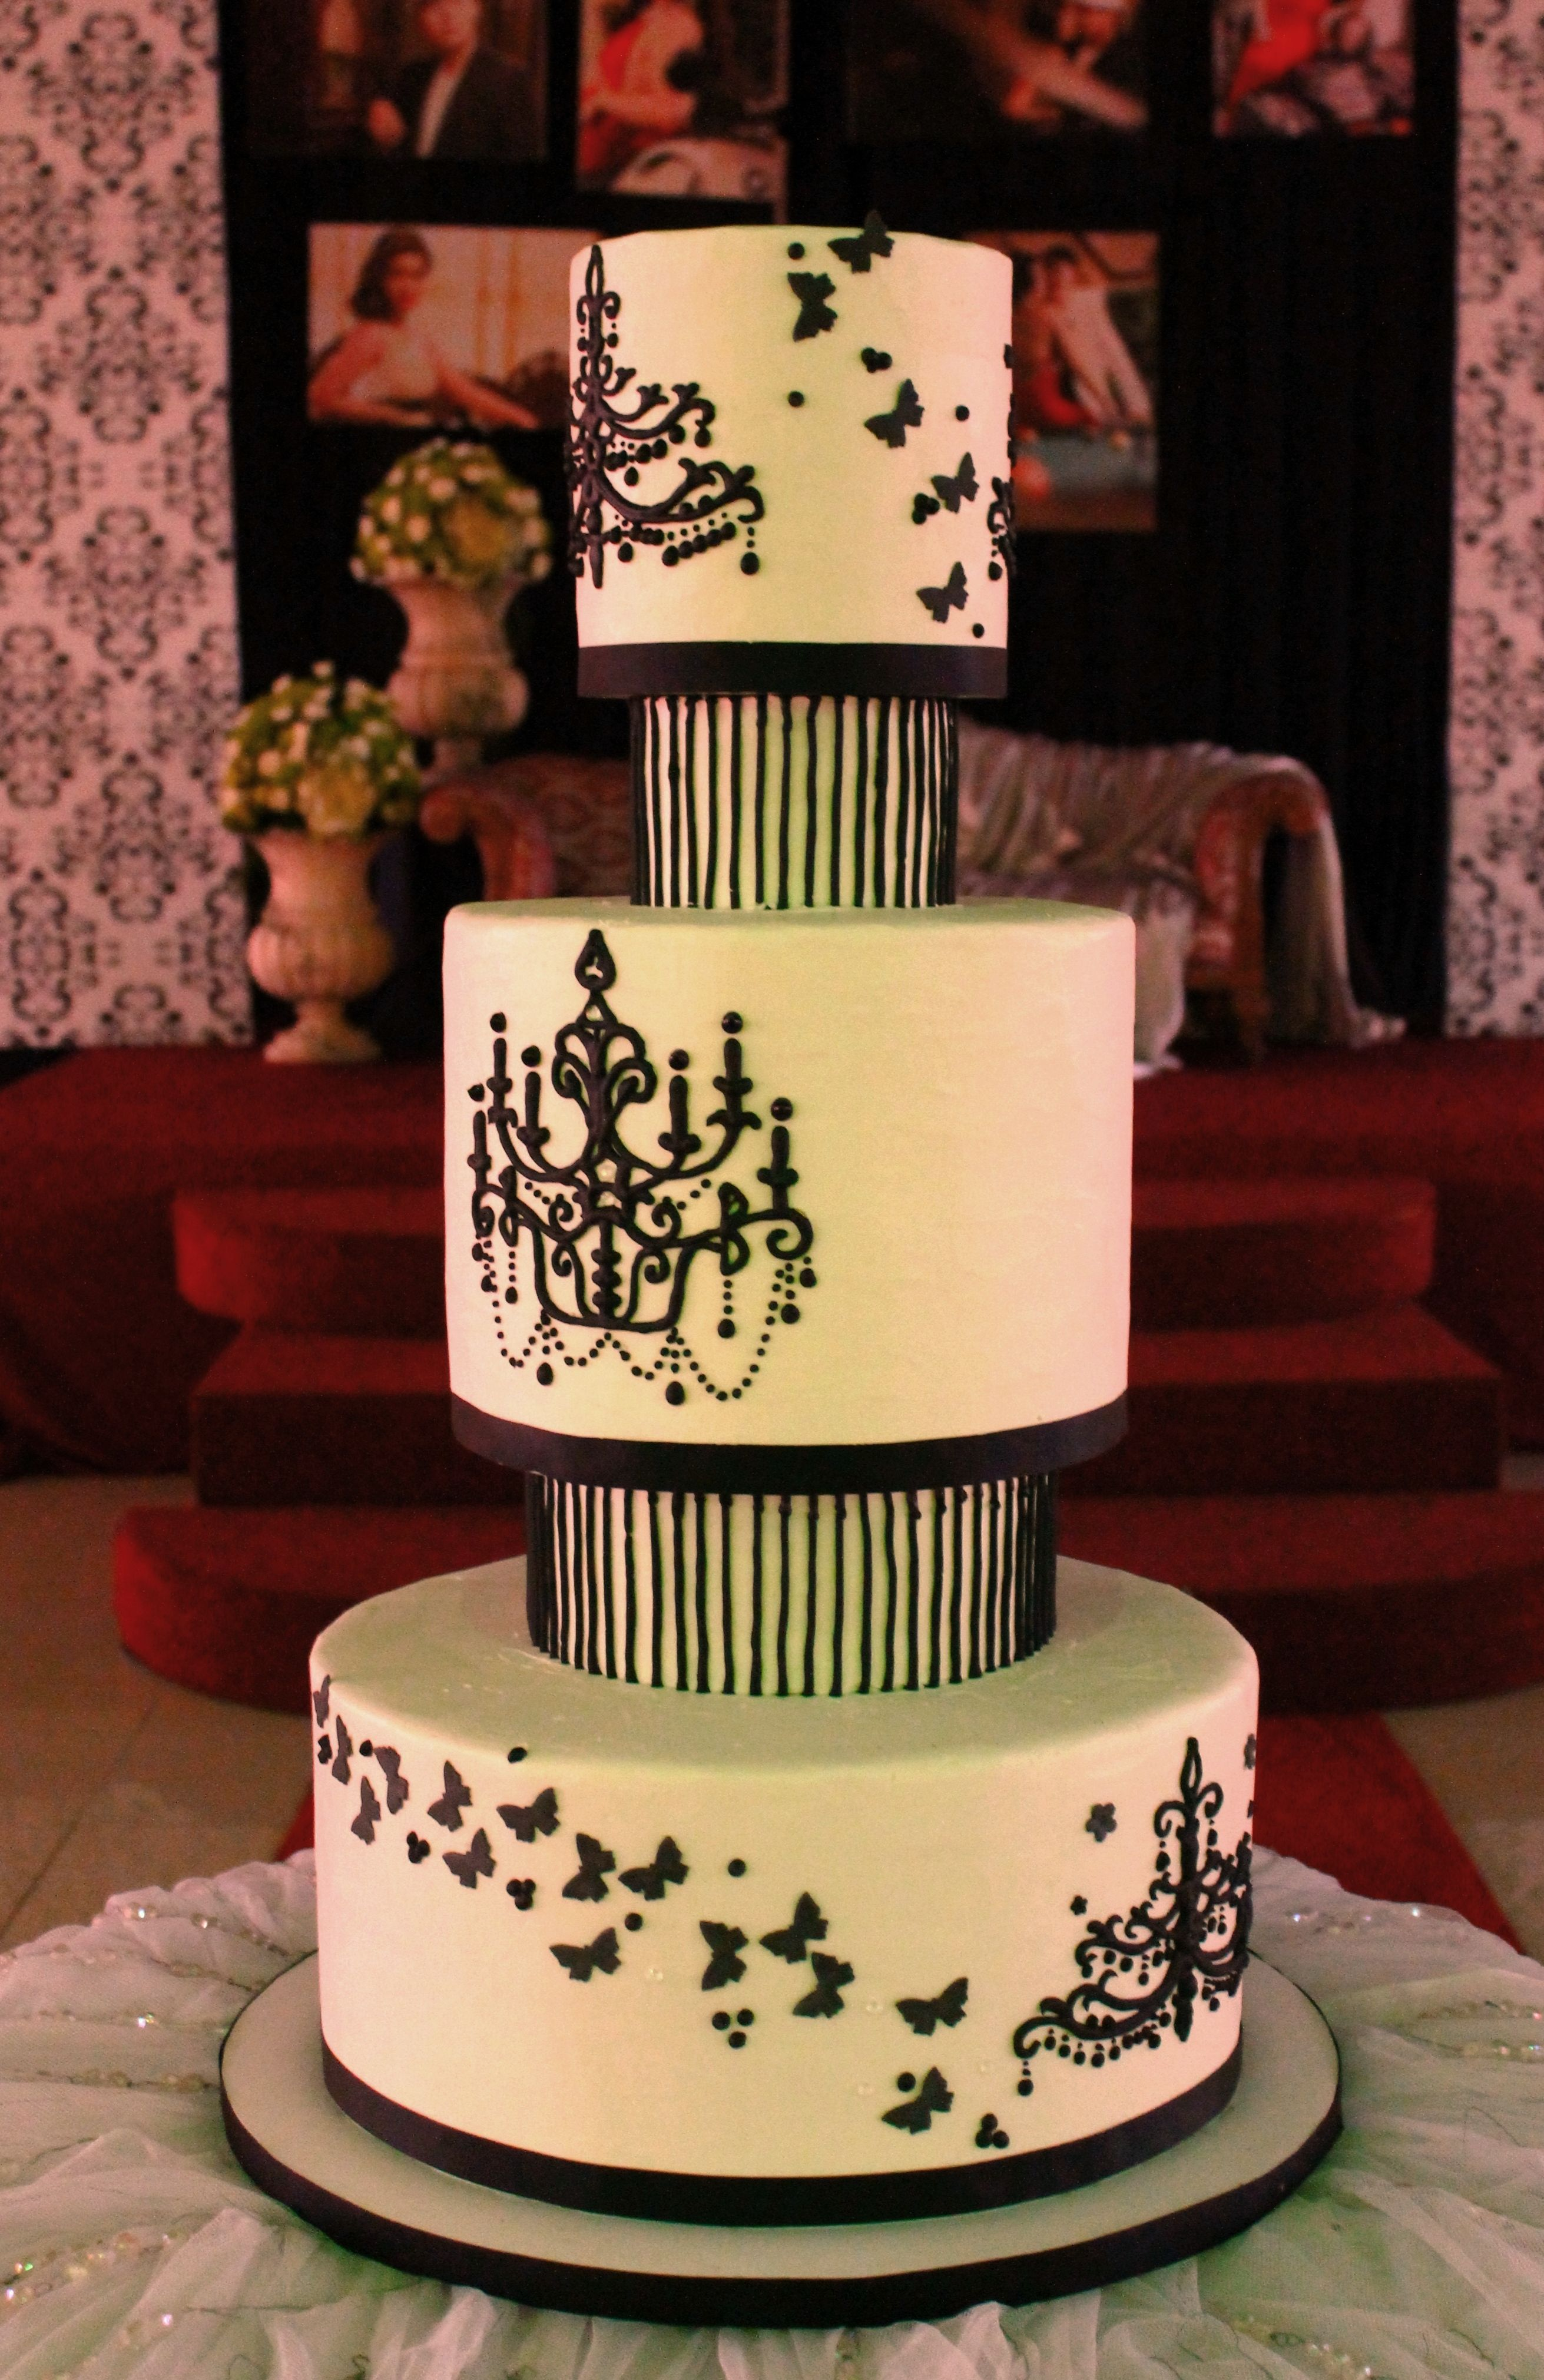 3 Layer Wedding Cake With Separators In Buttercream Icing Black Chandelier And Stripe Piping